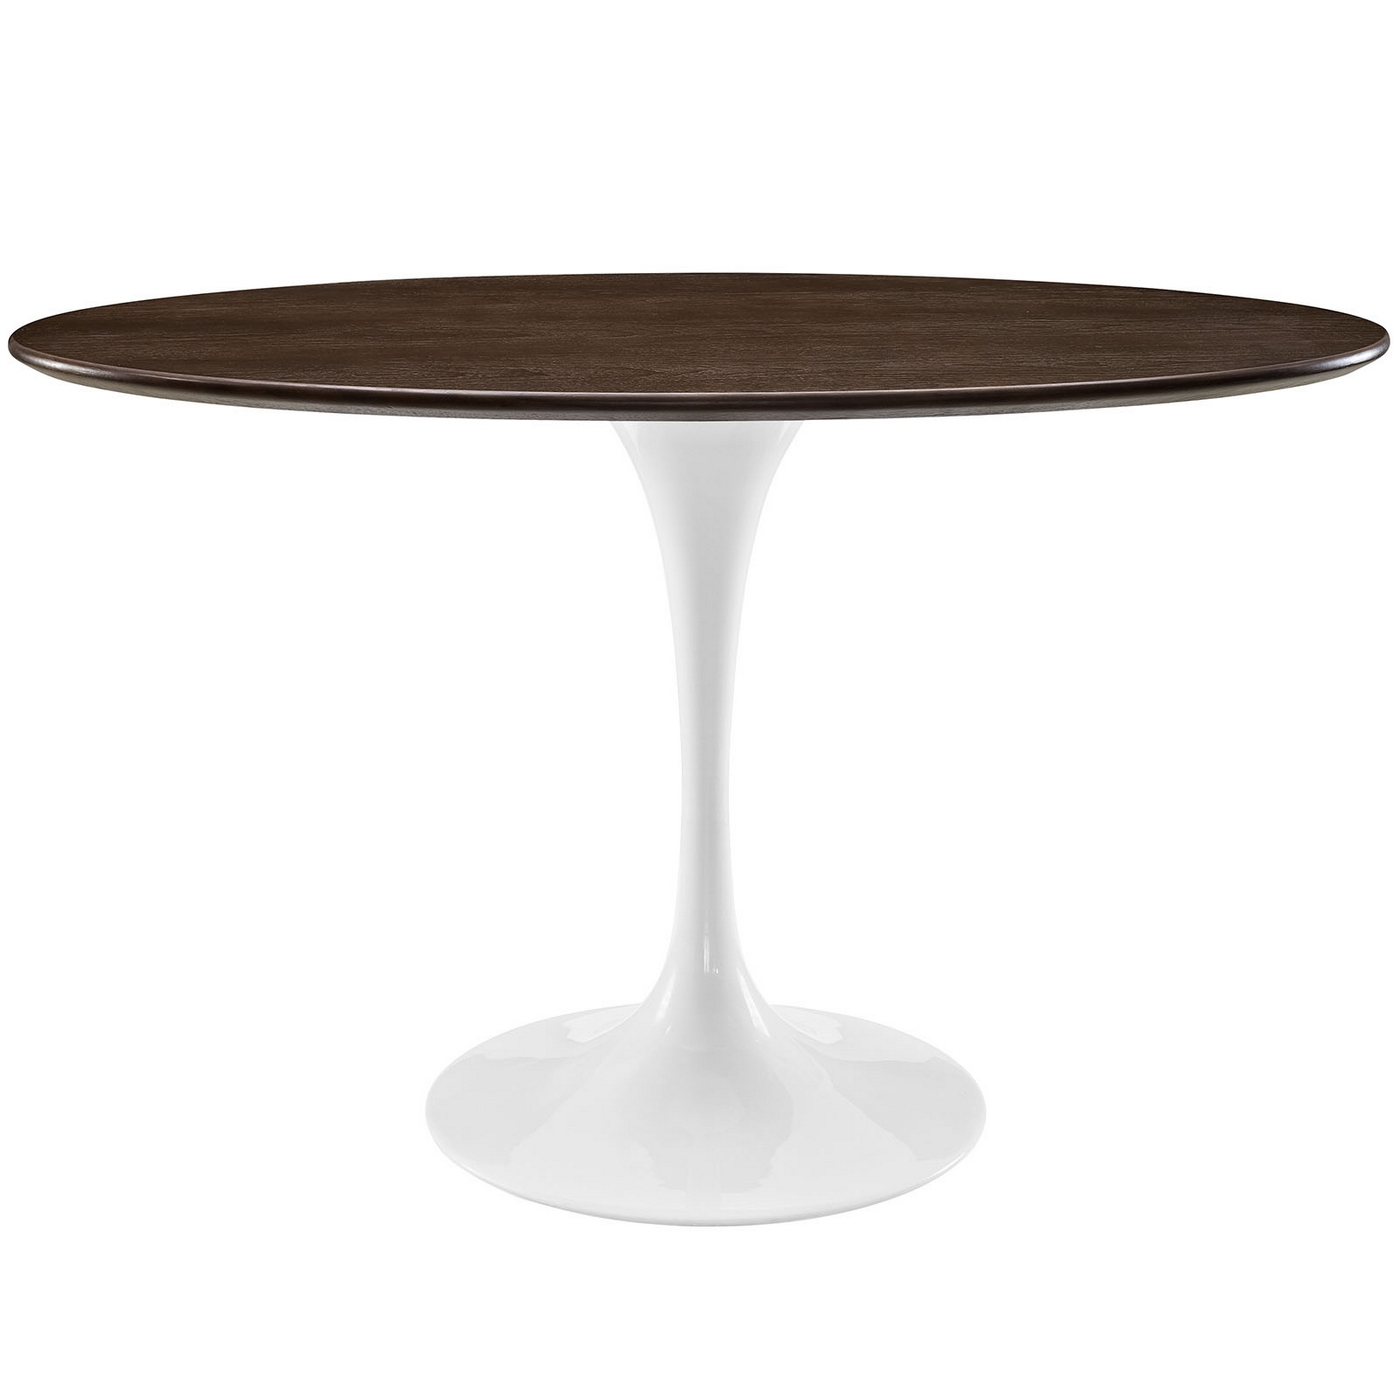 48 Oval Shaped Walnut Dining Table W Metal Lacquered Base Walnut